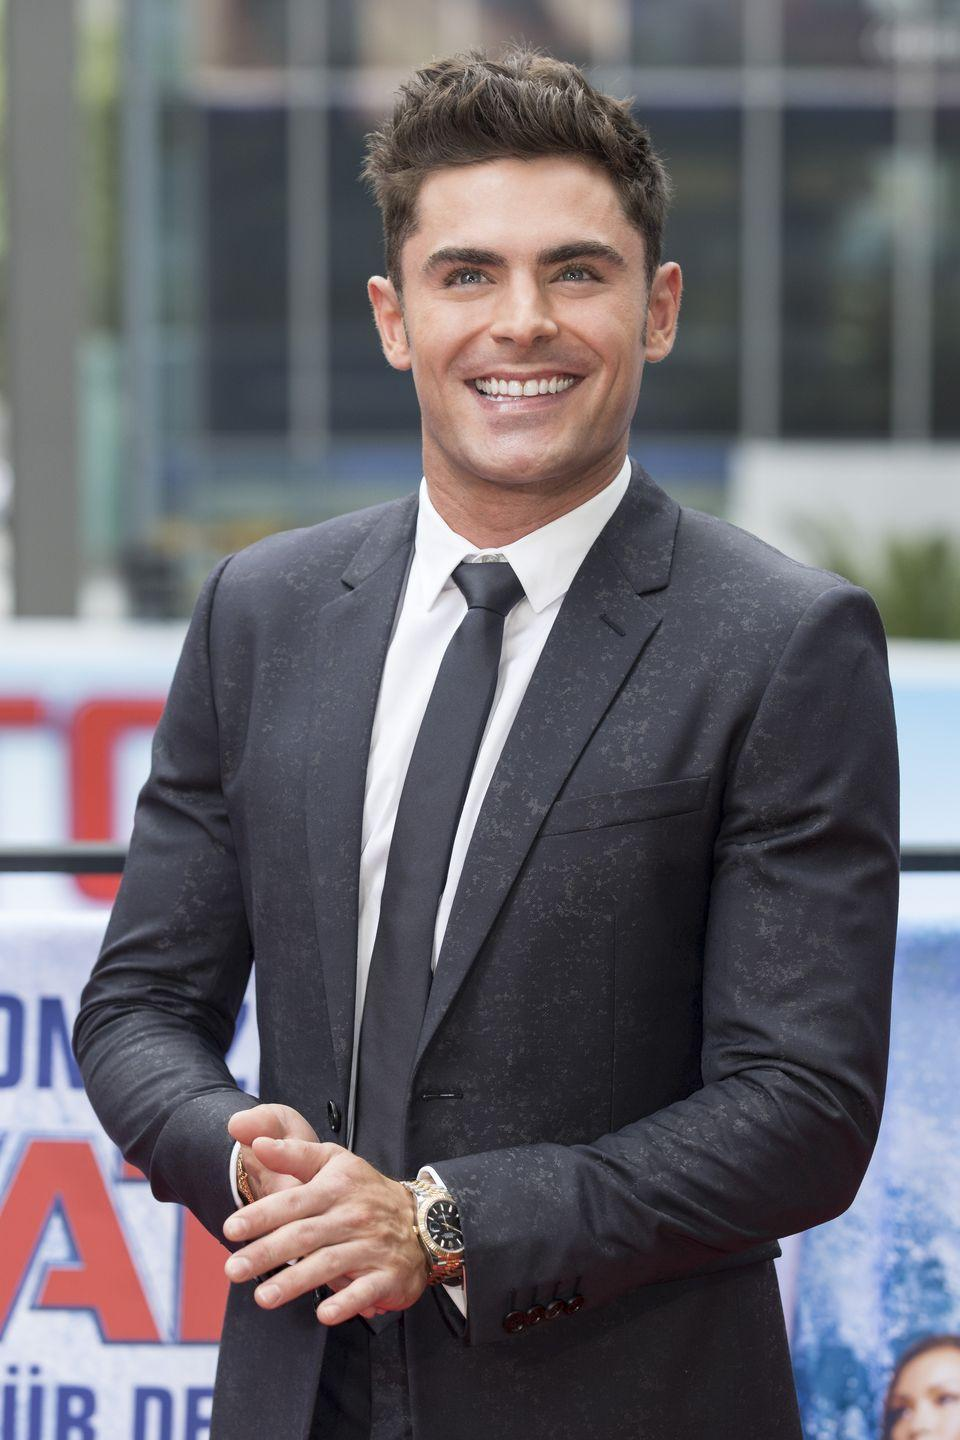 "<p>Sans beard, Efron looks like he could break out into ""We're All in This Together"" at any moment. We prefer the beard, <del>Troy</del> Zac. </p>"